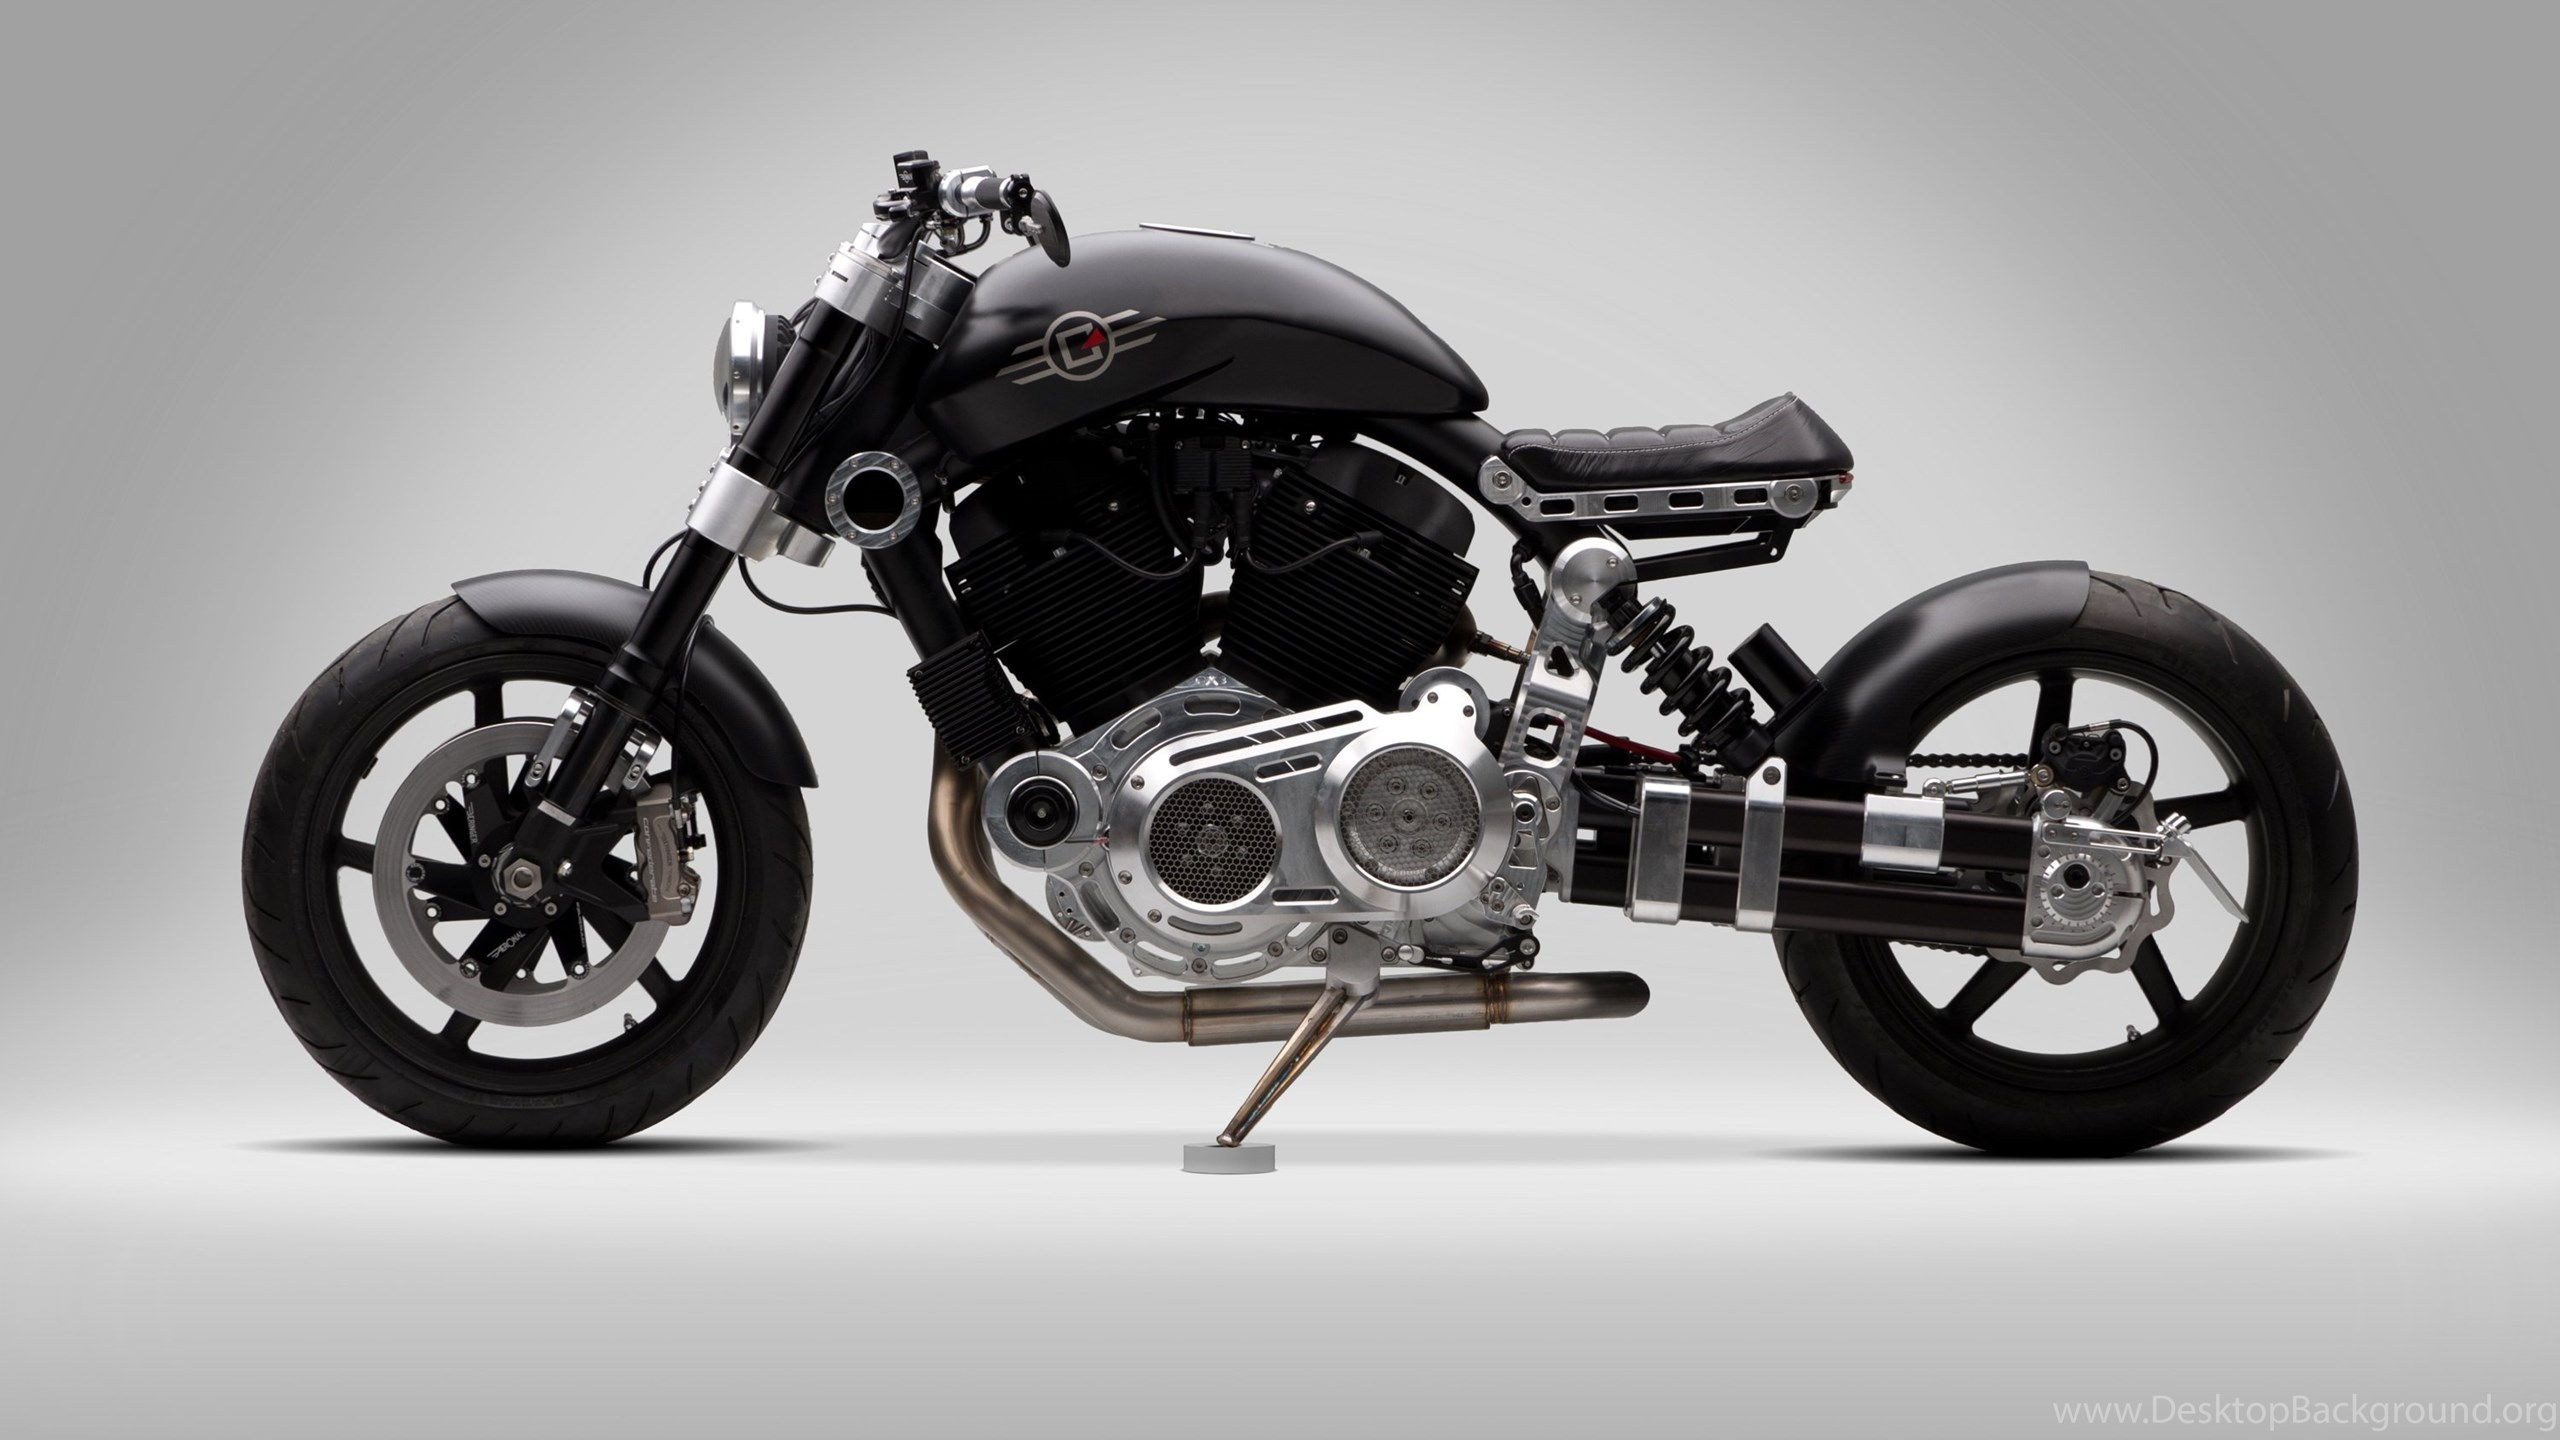 Wallpaper Outomotif Hd: Cafe Racer Backgrounds Wallpapers : Otomotif Wallpapers